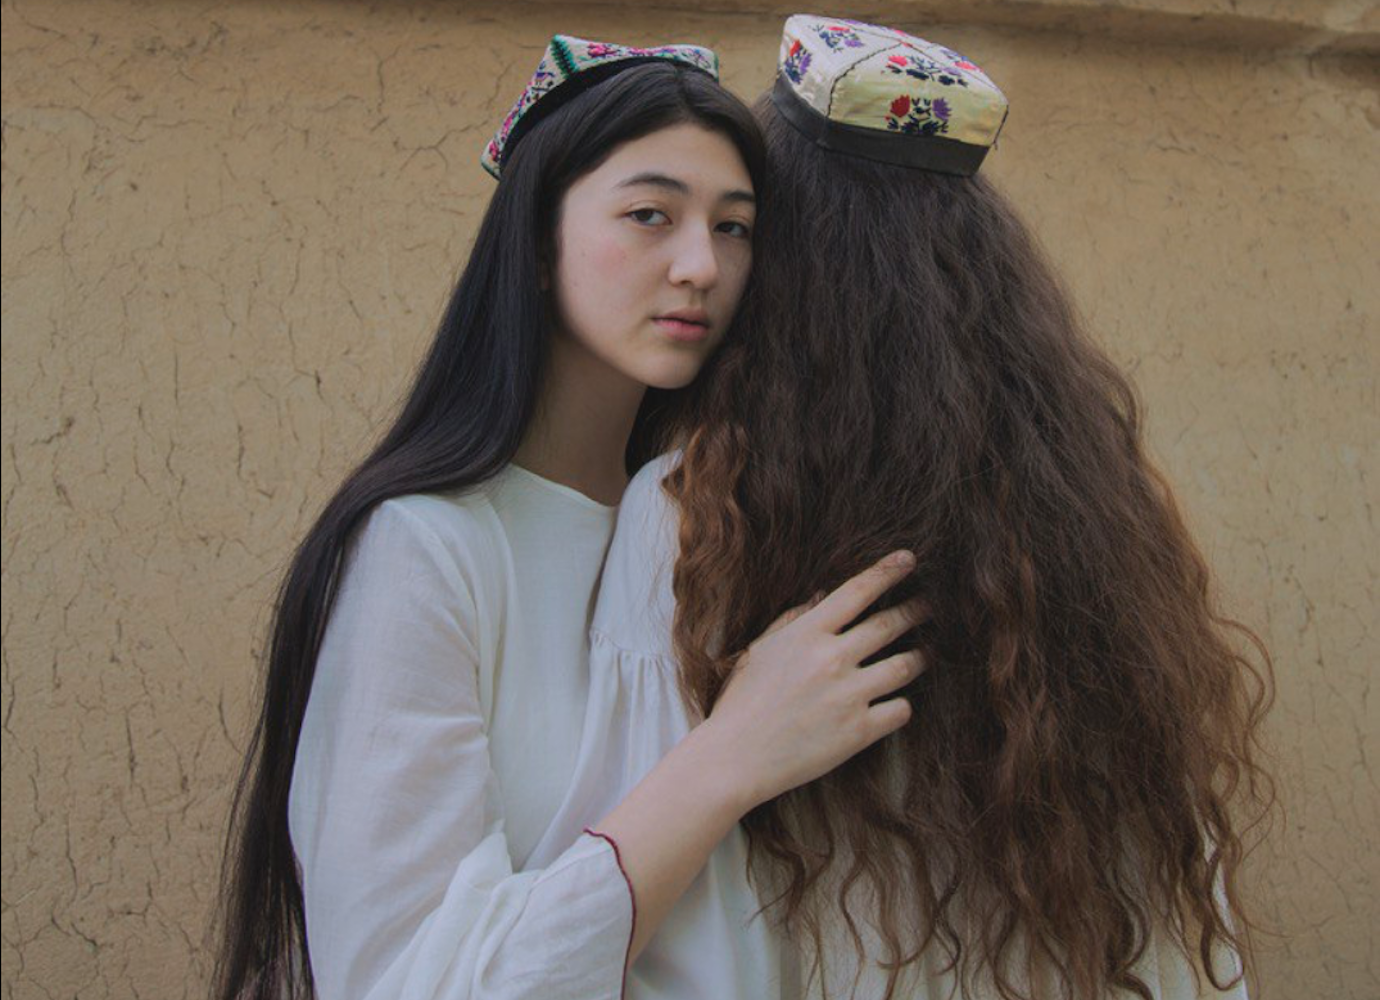 Daring photos show womanhood and forbidden love in contemporary Uzbekistan